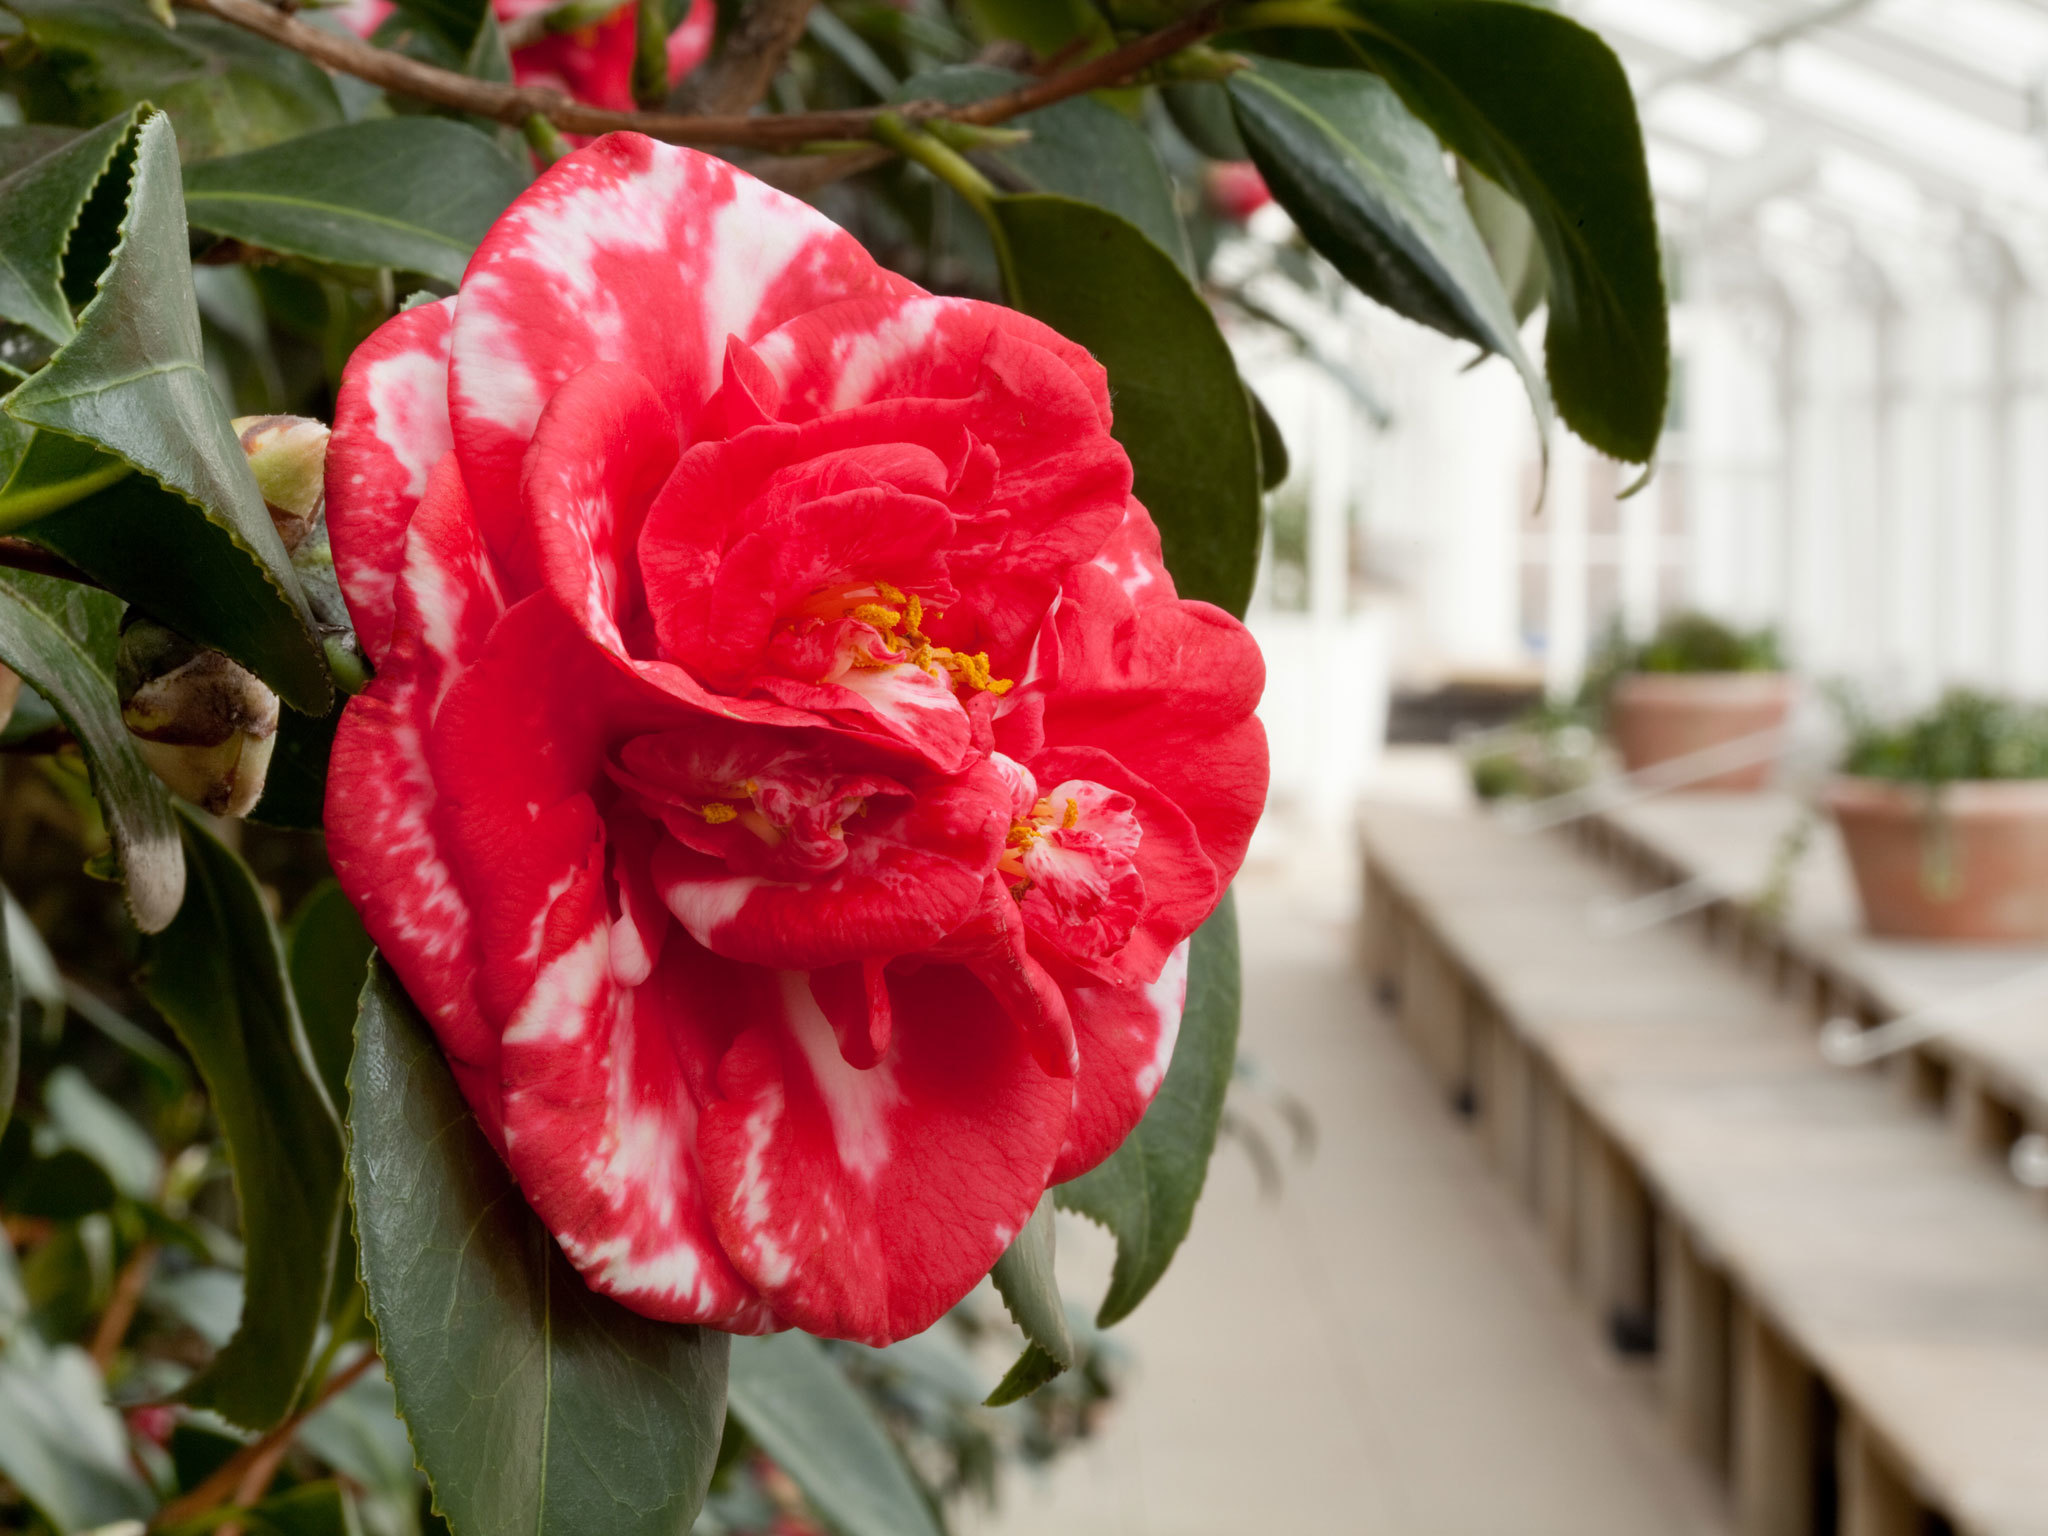 Camellias at Chiswick House